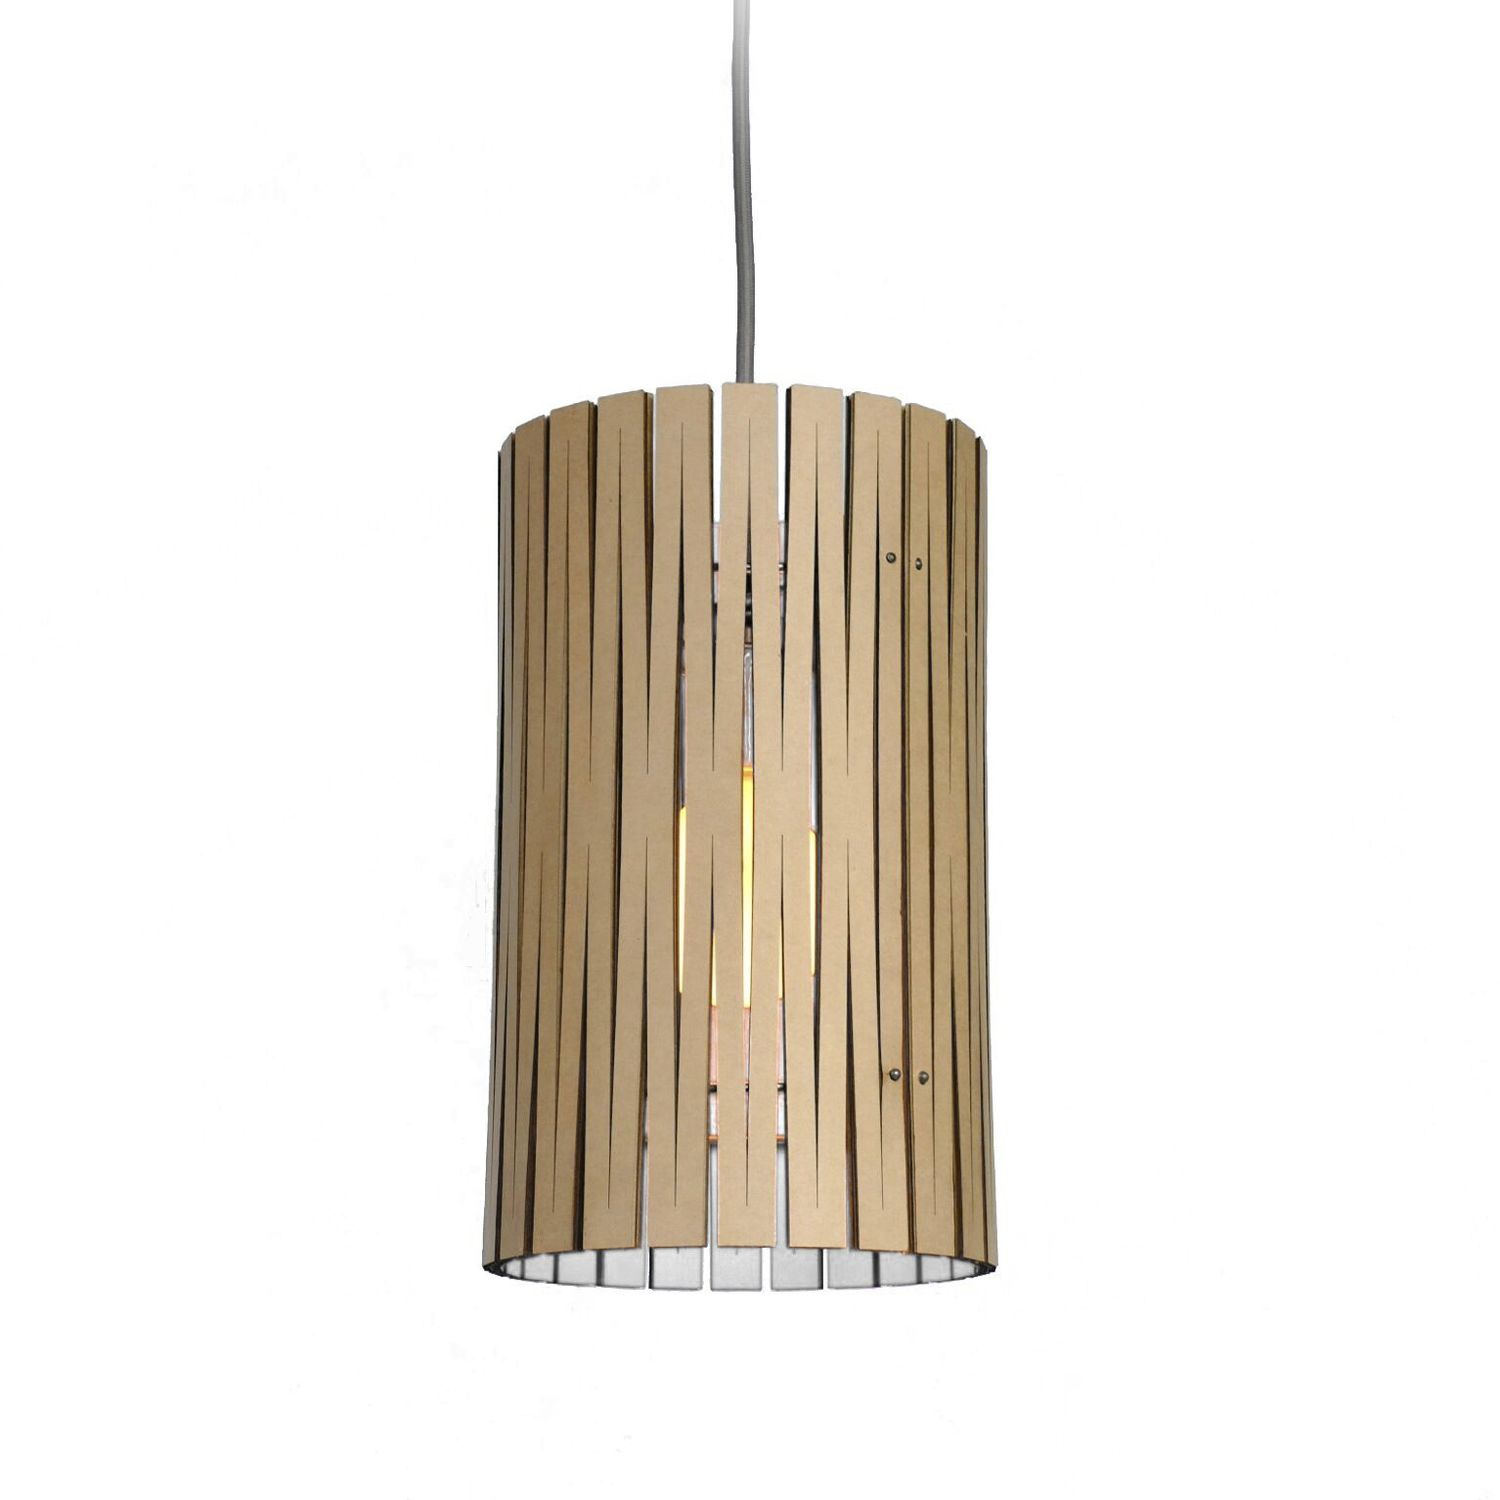 wood pendant lighting. Pendant Lamp / Contemporary Steel Wooden - KERFLIGHTS: SELWYN Wood Lighting E